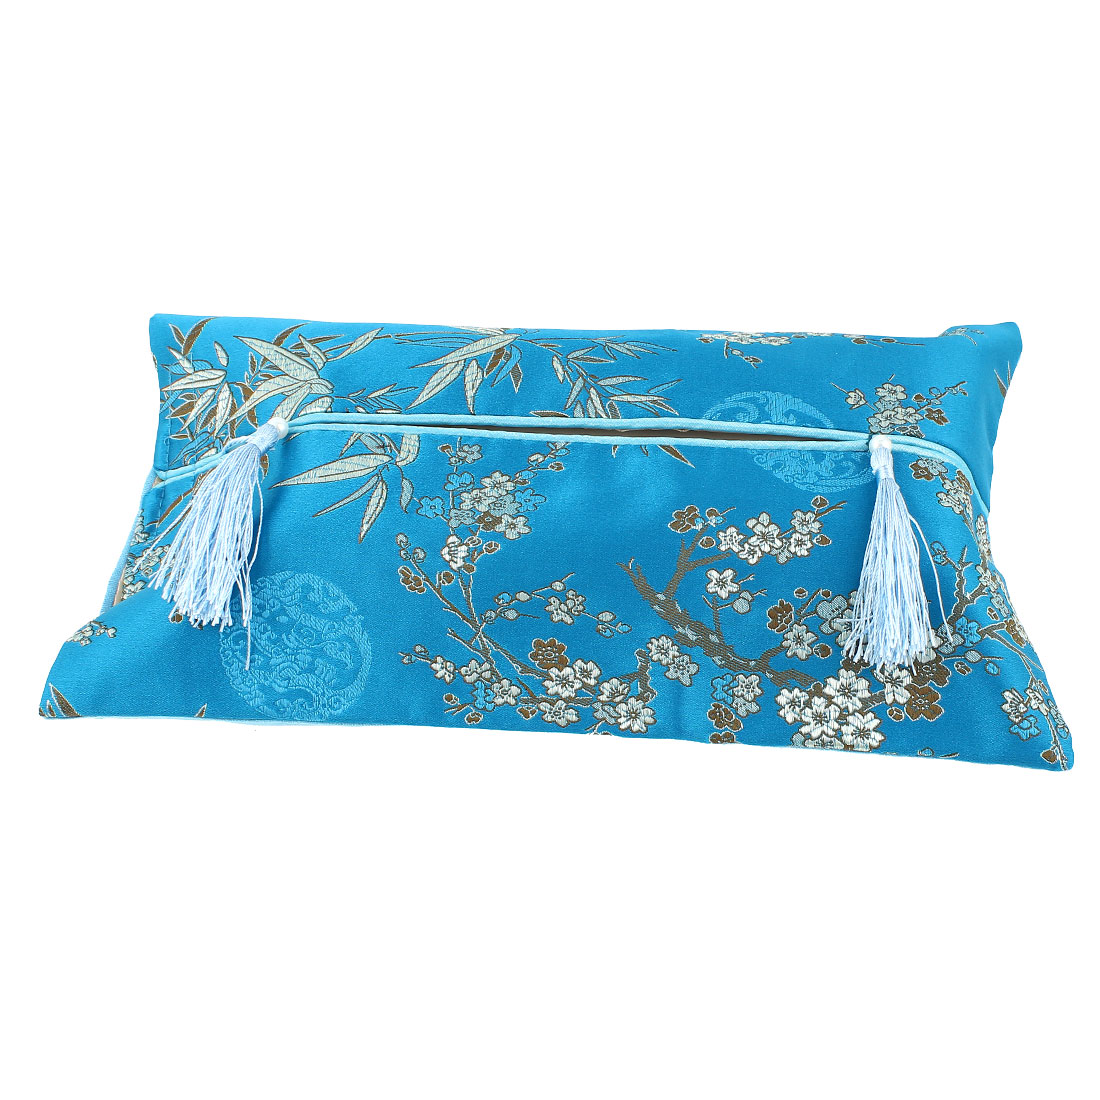 Rectangle Shape Embroidery Floral Pattern Tassel Decor Tissue Box Cover Blue